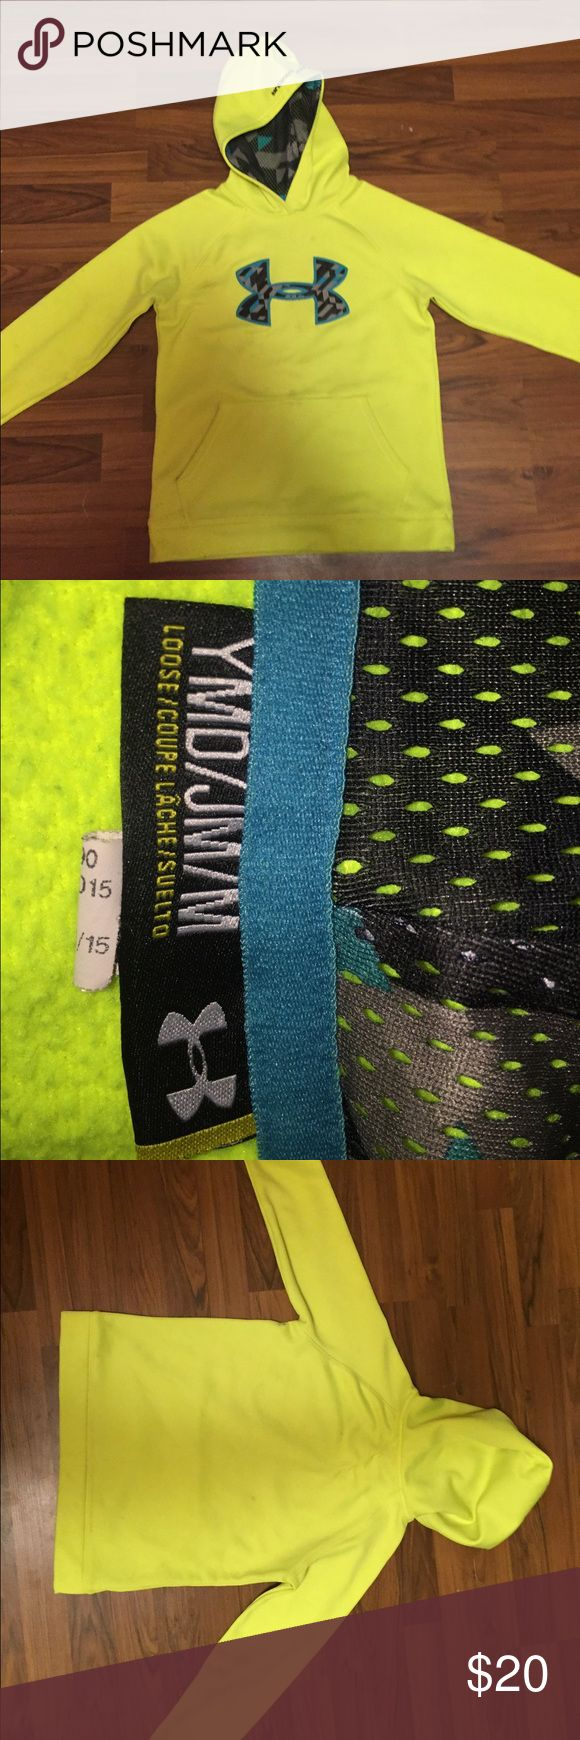 Youth medium under armor hoodie Highlighter yellow under armor hoodie. Has a few tiny stains that will wash out. Great condition. Under Armour Shirts & Tops Sweatshirts & Hoodies